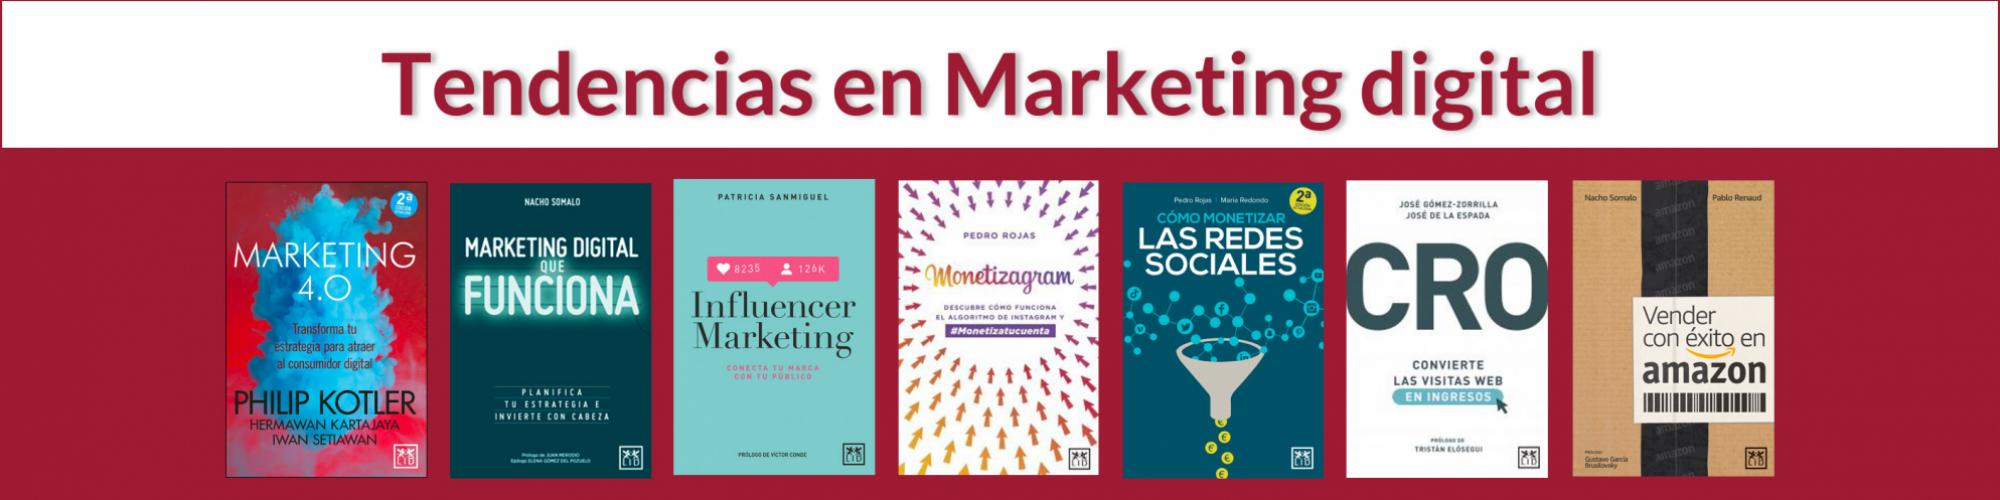 Libros-marketing-digital